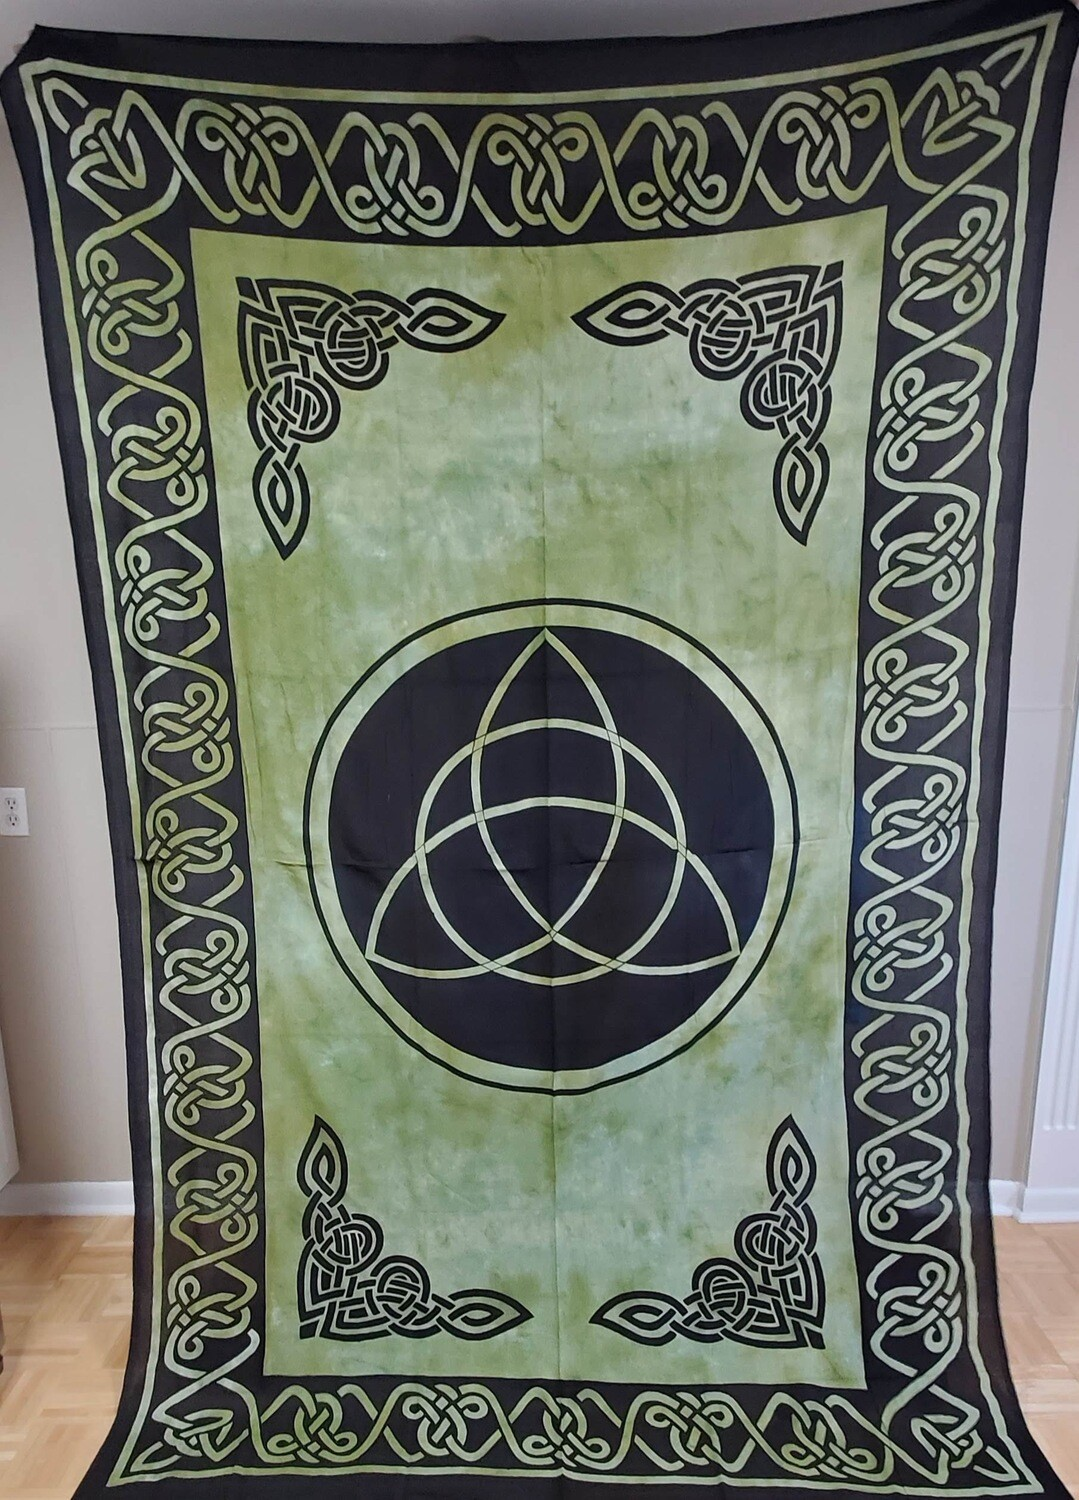 GRN/BLK TRIQUETRA TAPESTRY